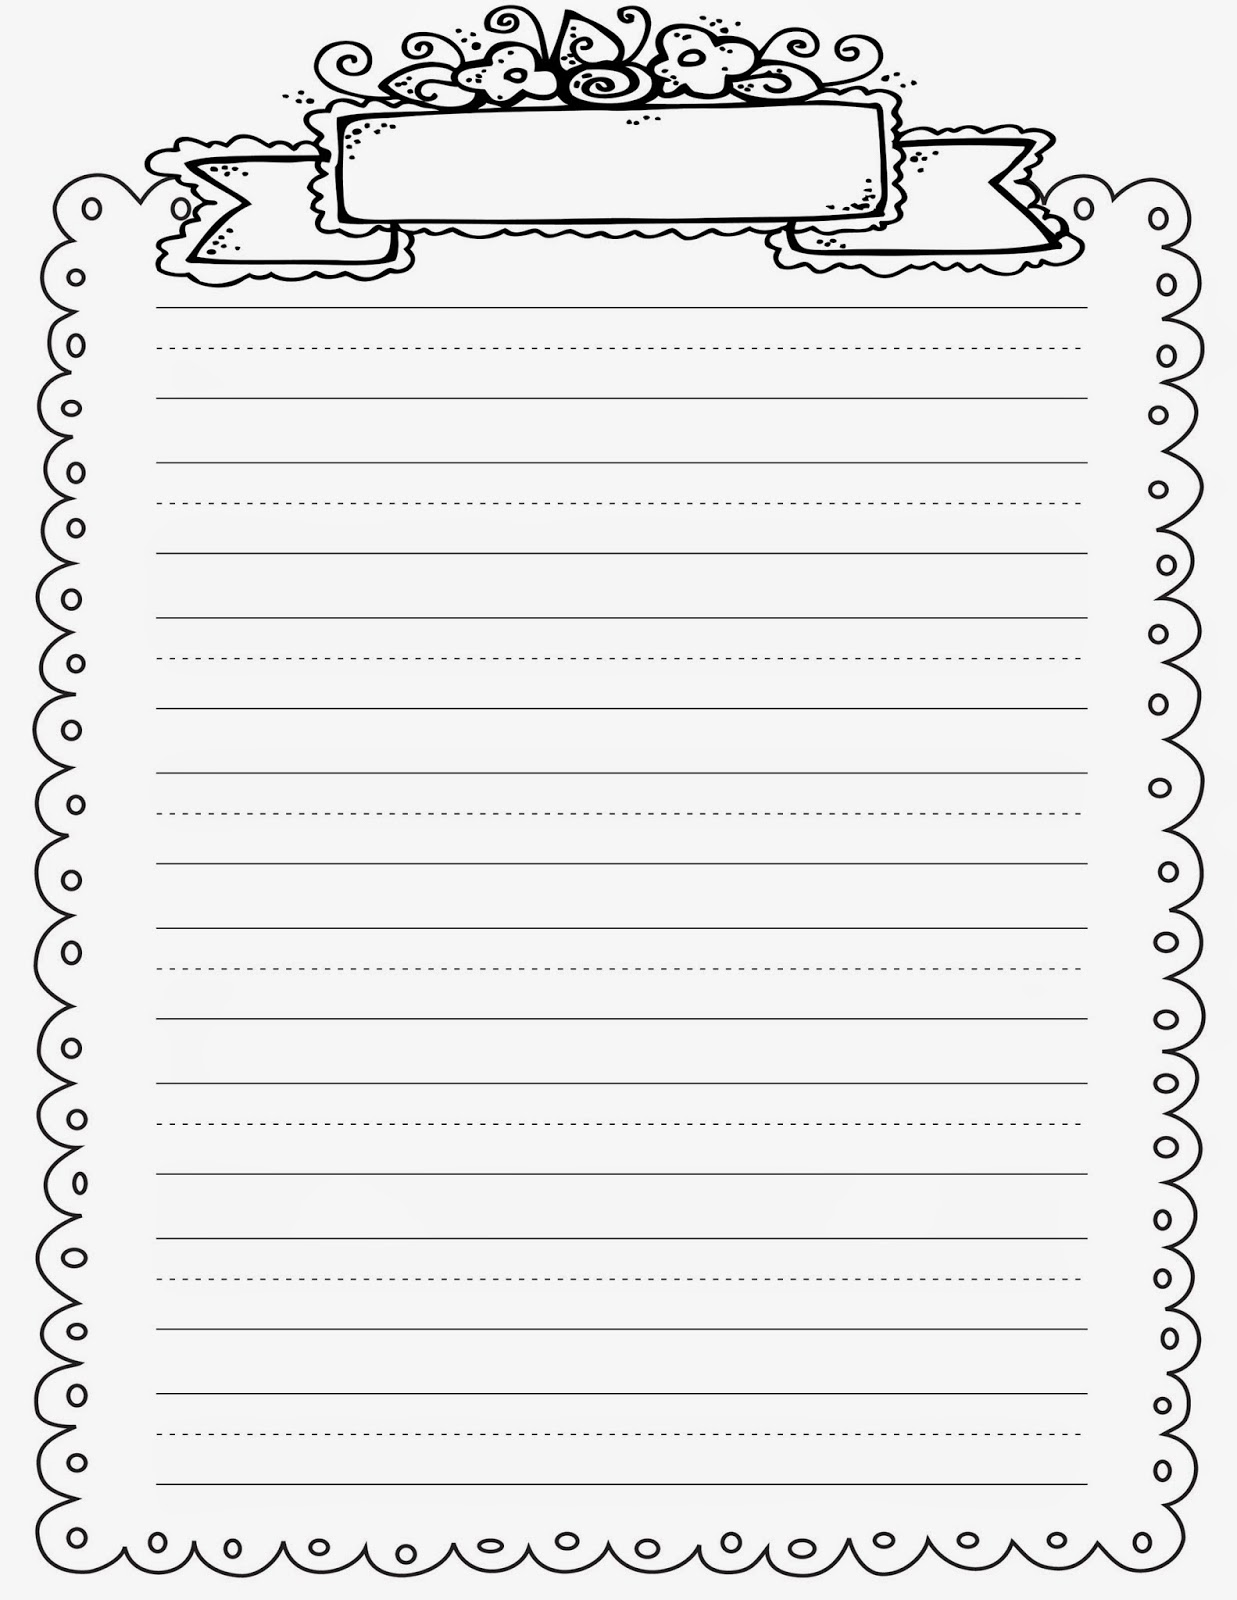 Lined Writing Paper Printable Free - free printable handwriting paper ...